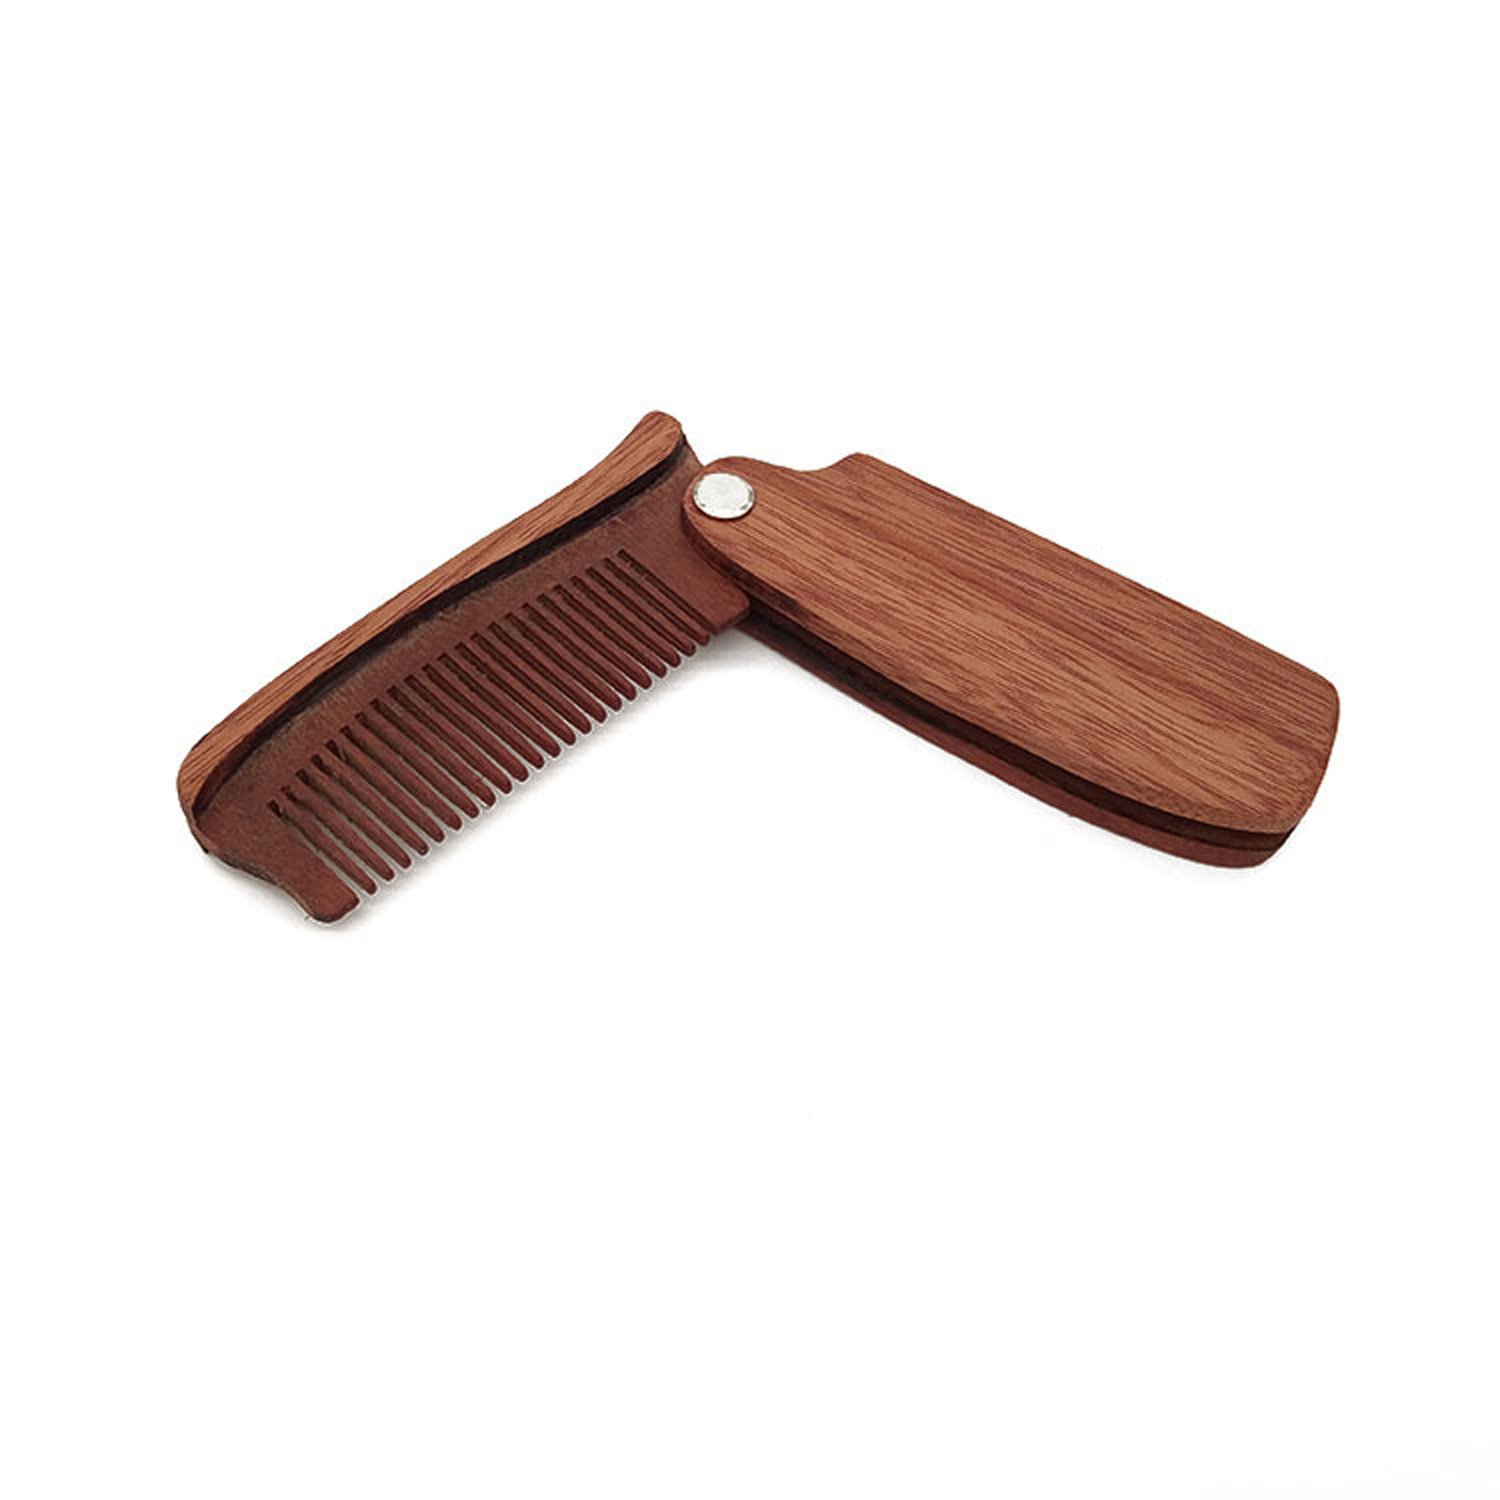 Anti-Static Wooden Folding Wood Comb, Great For Men Head Hair And Beards Styling